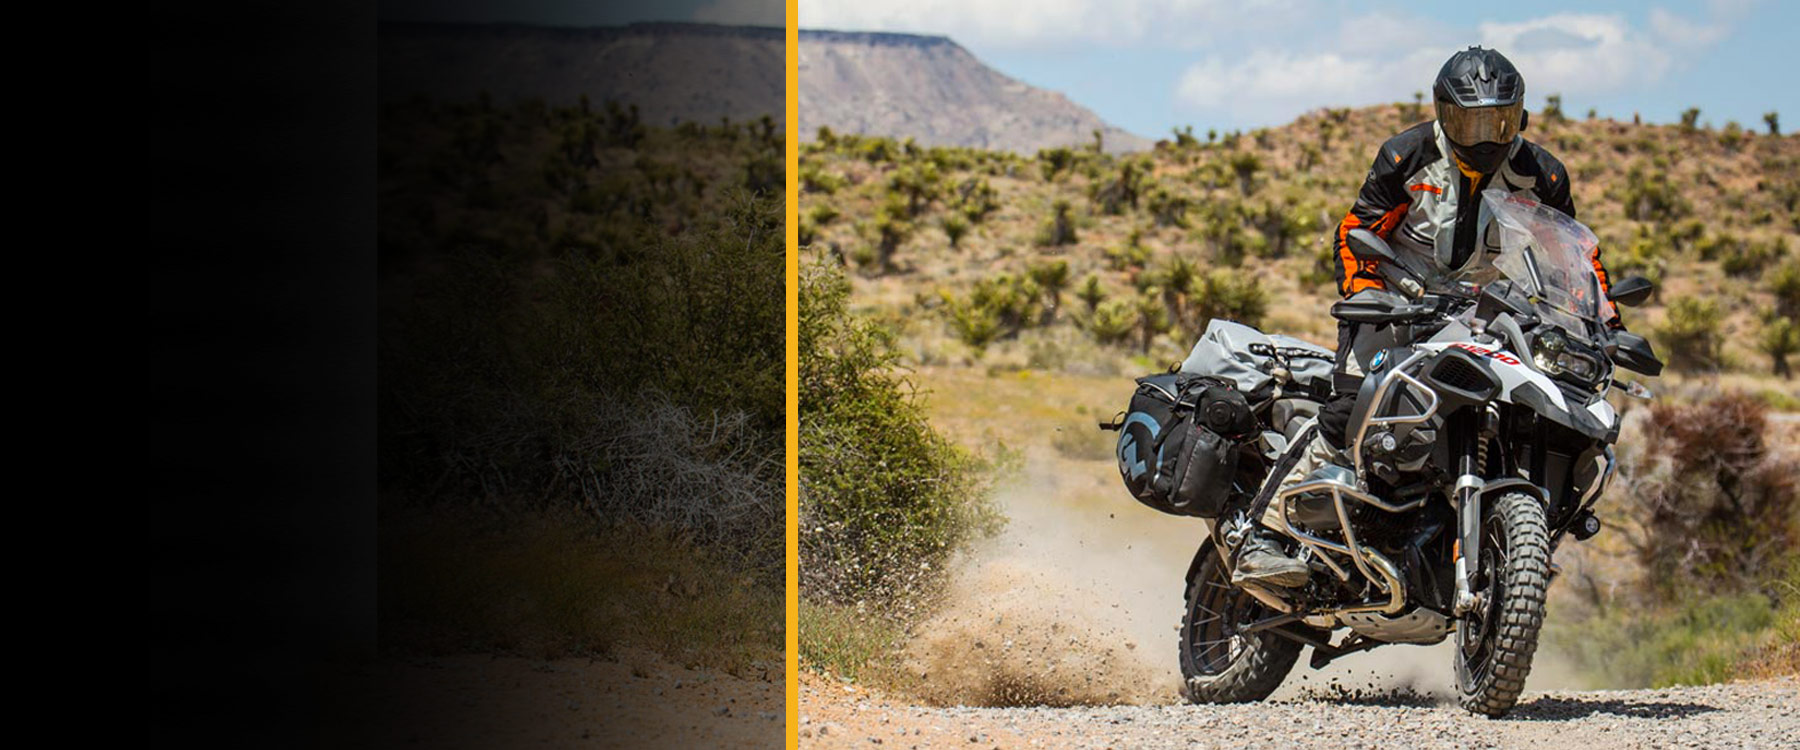 Twisted-Trails-enduro-motorcycle-products-Take-the-trail-less-travelled